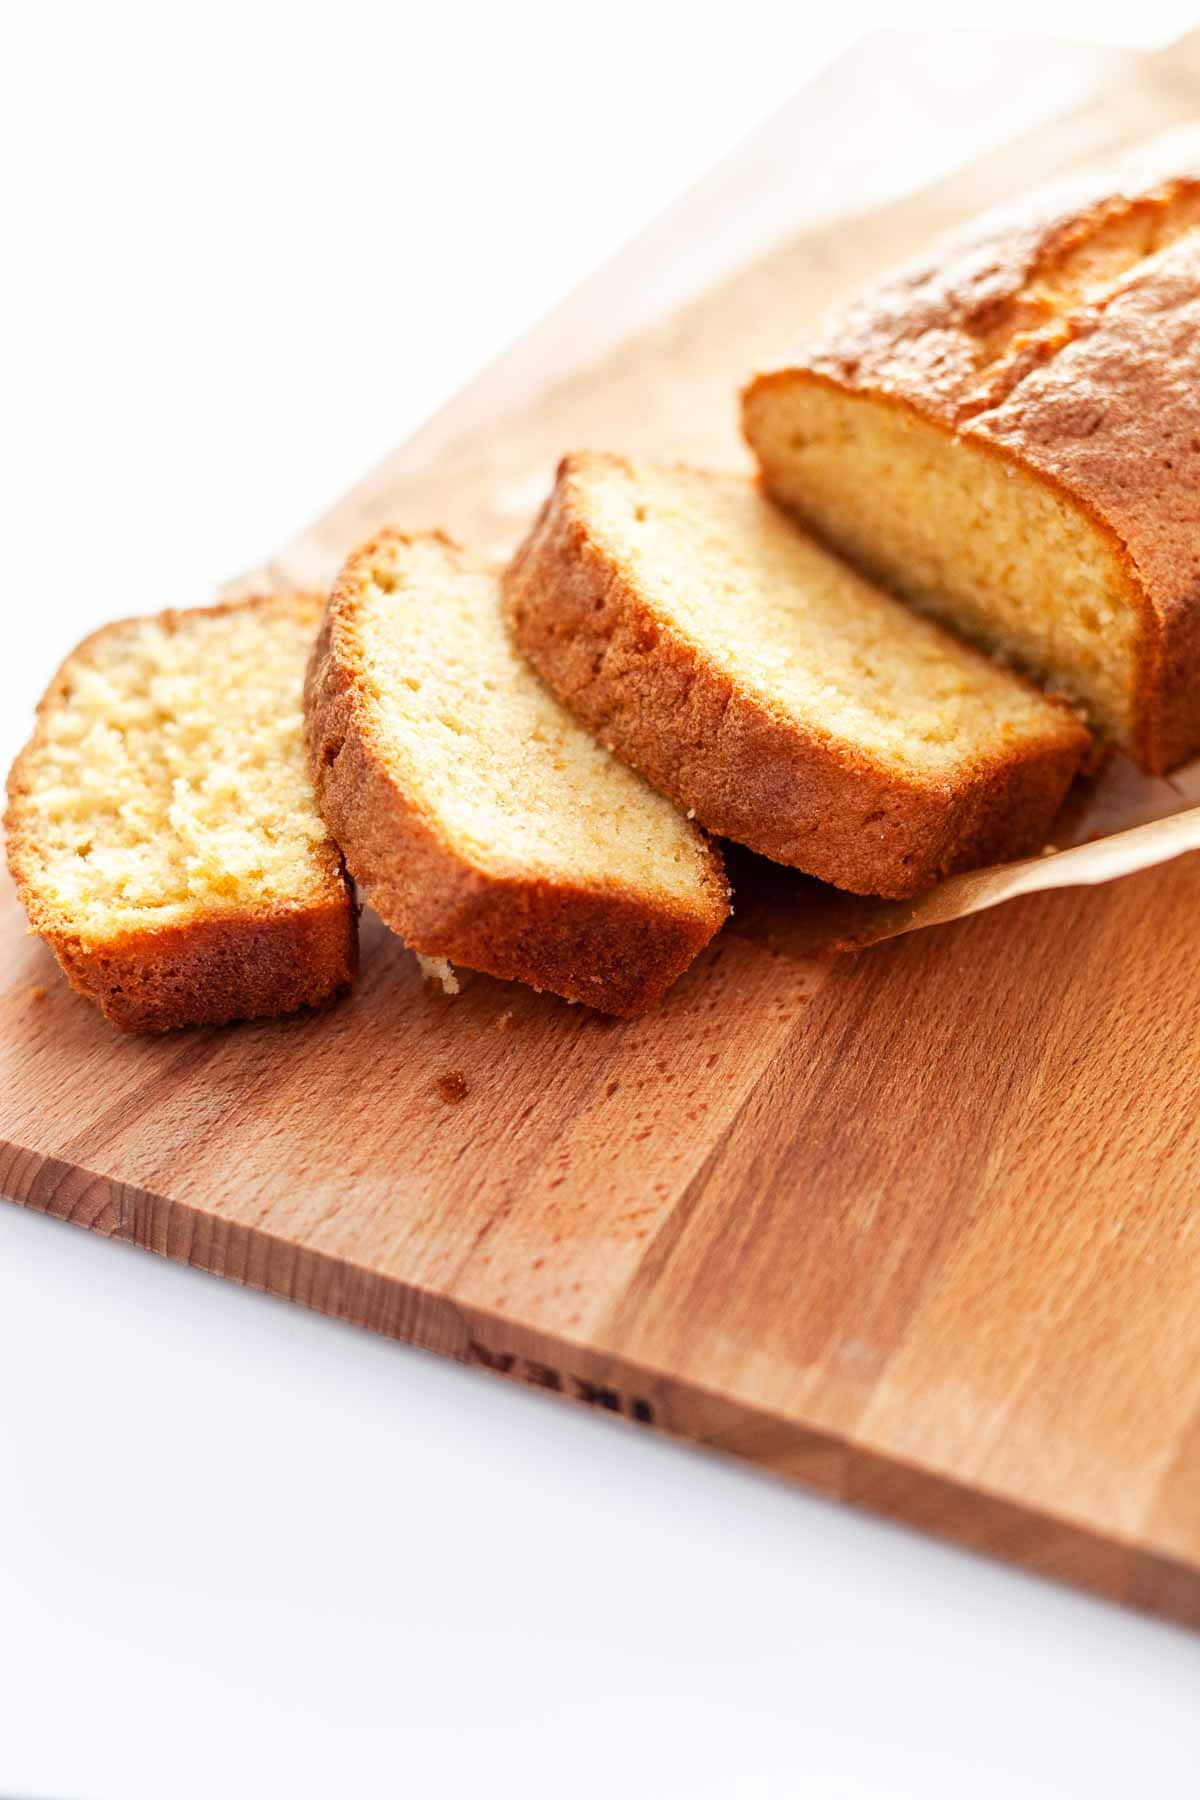 Soft, moist vanilla pound cake made in a loaf pan. A super simple and easy recipe. Done in no time. Great to serve with coffee or as dessert. Visit thetortillachannel.com for the full recipe #thetortillachannel #vanillapoundcake #loafcake #poundcake #cakerecipe #vanillacake